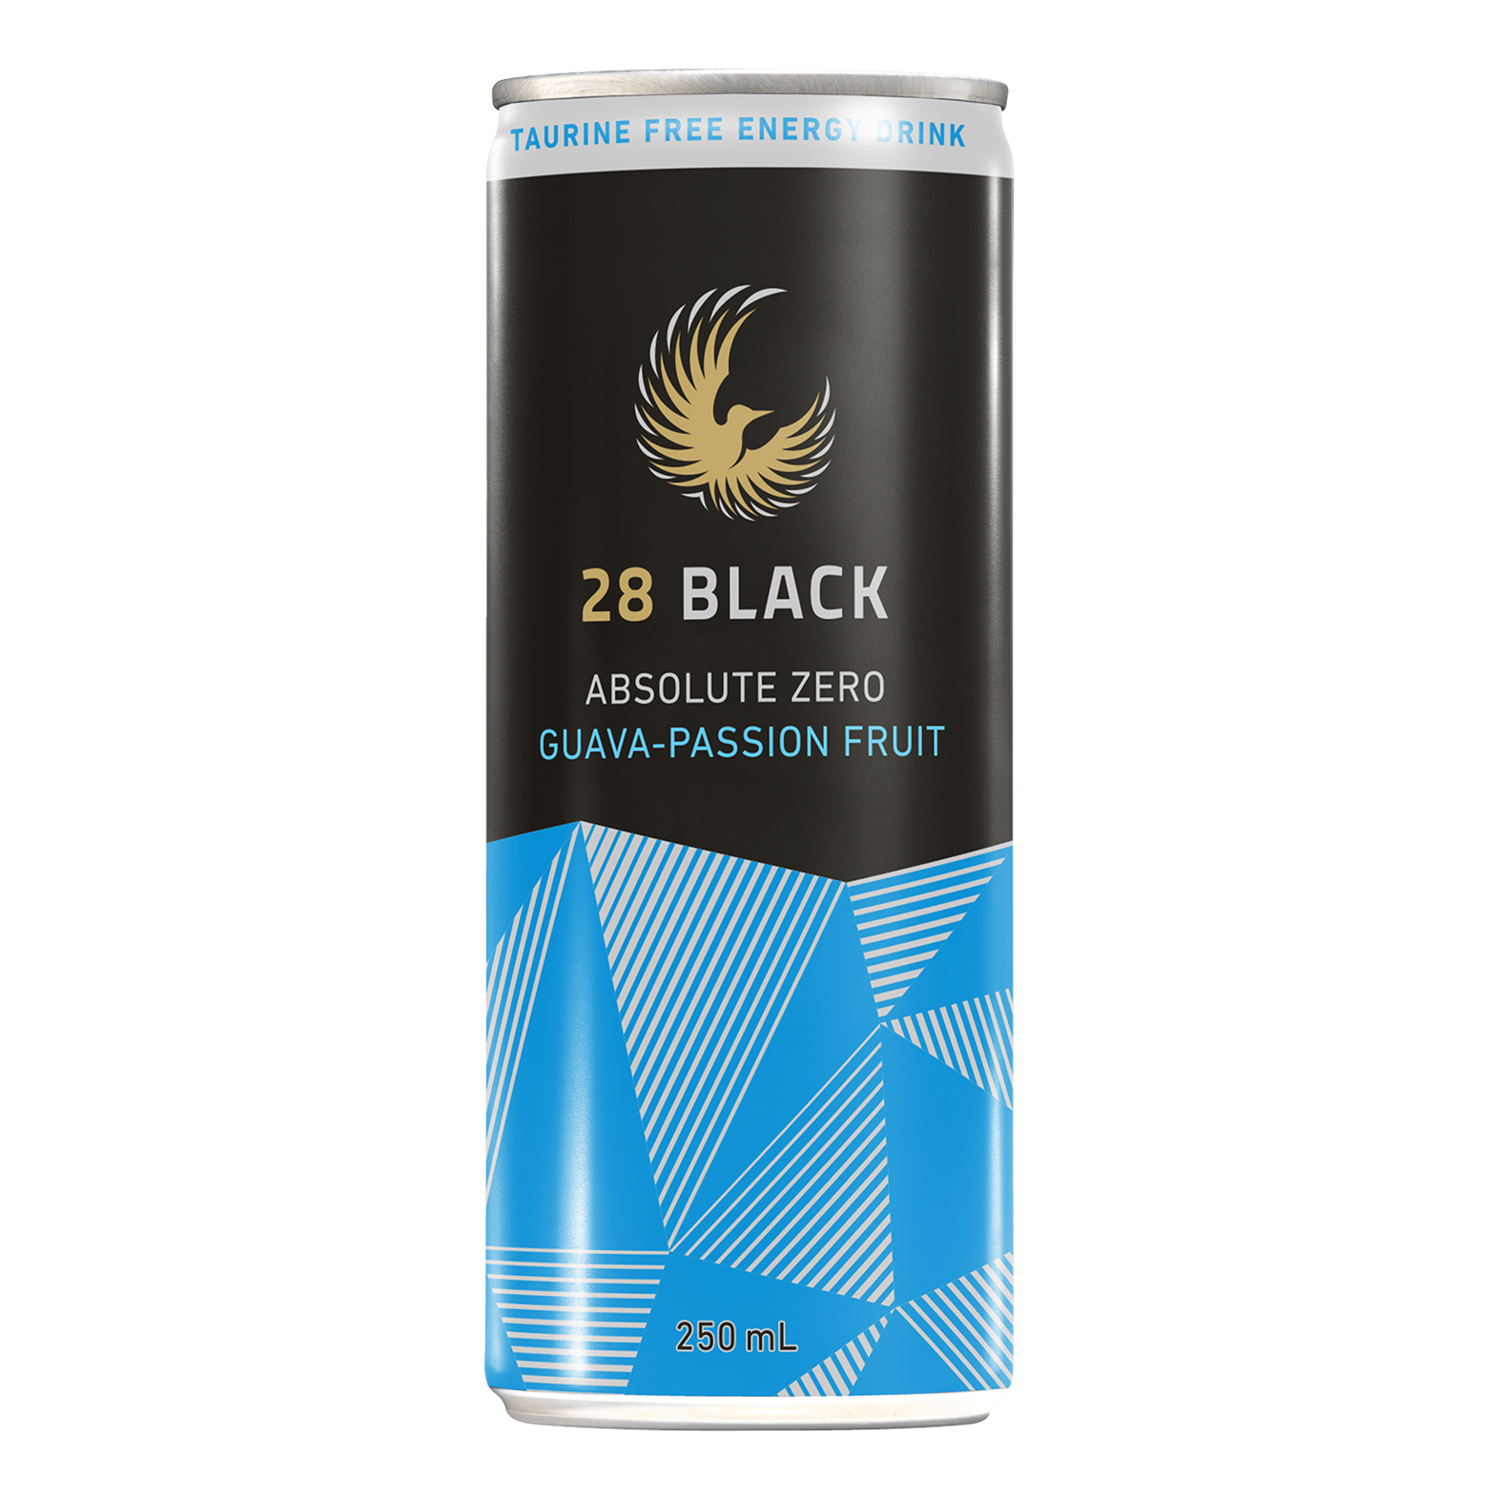 28 BLACK Absolute Zero Guava-Passion Fruit – Tray of 24 cans